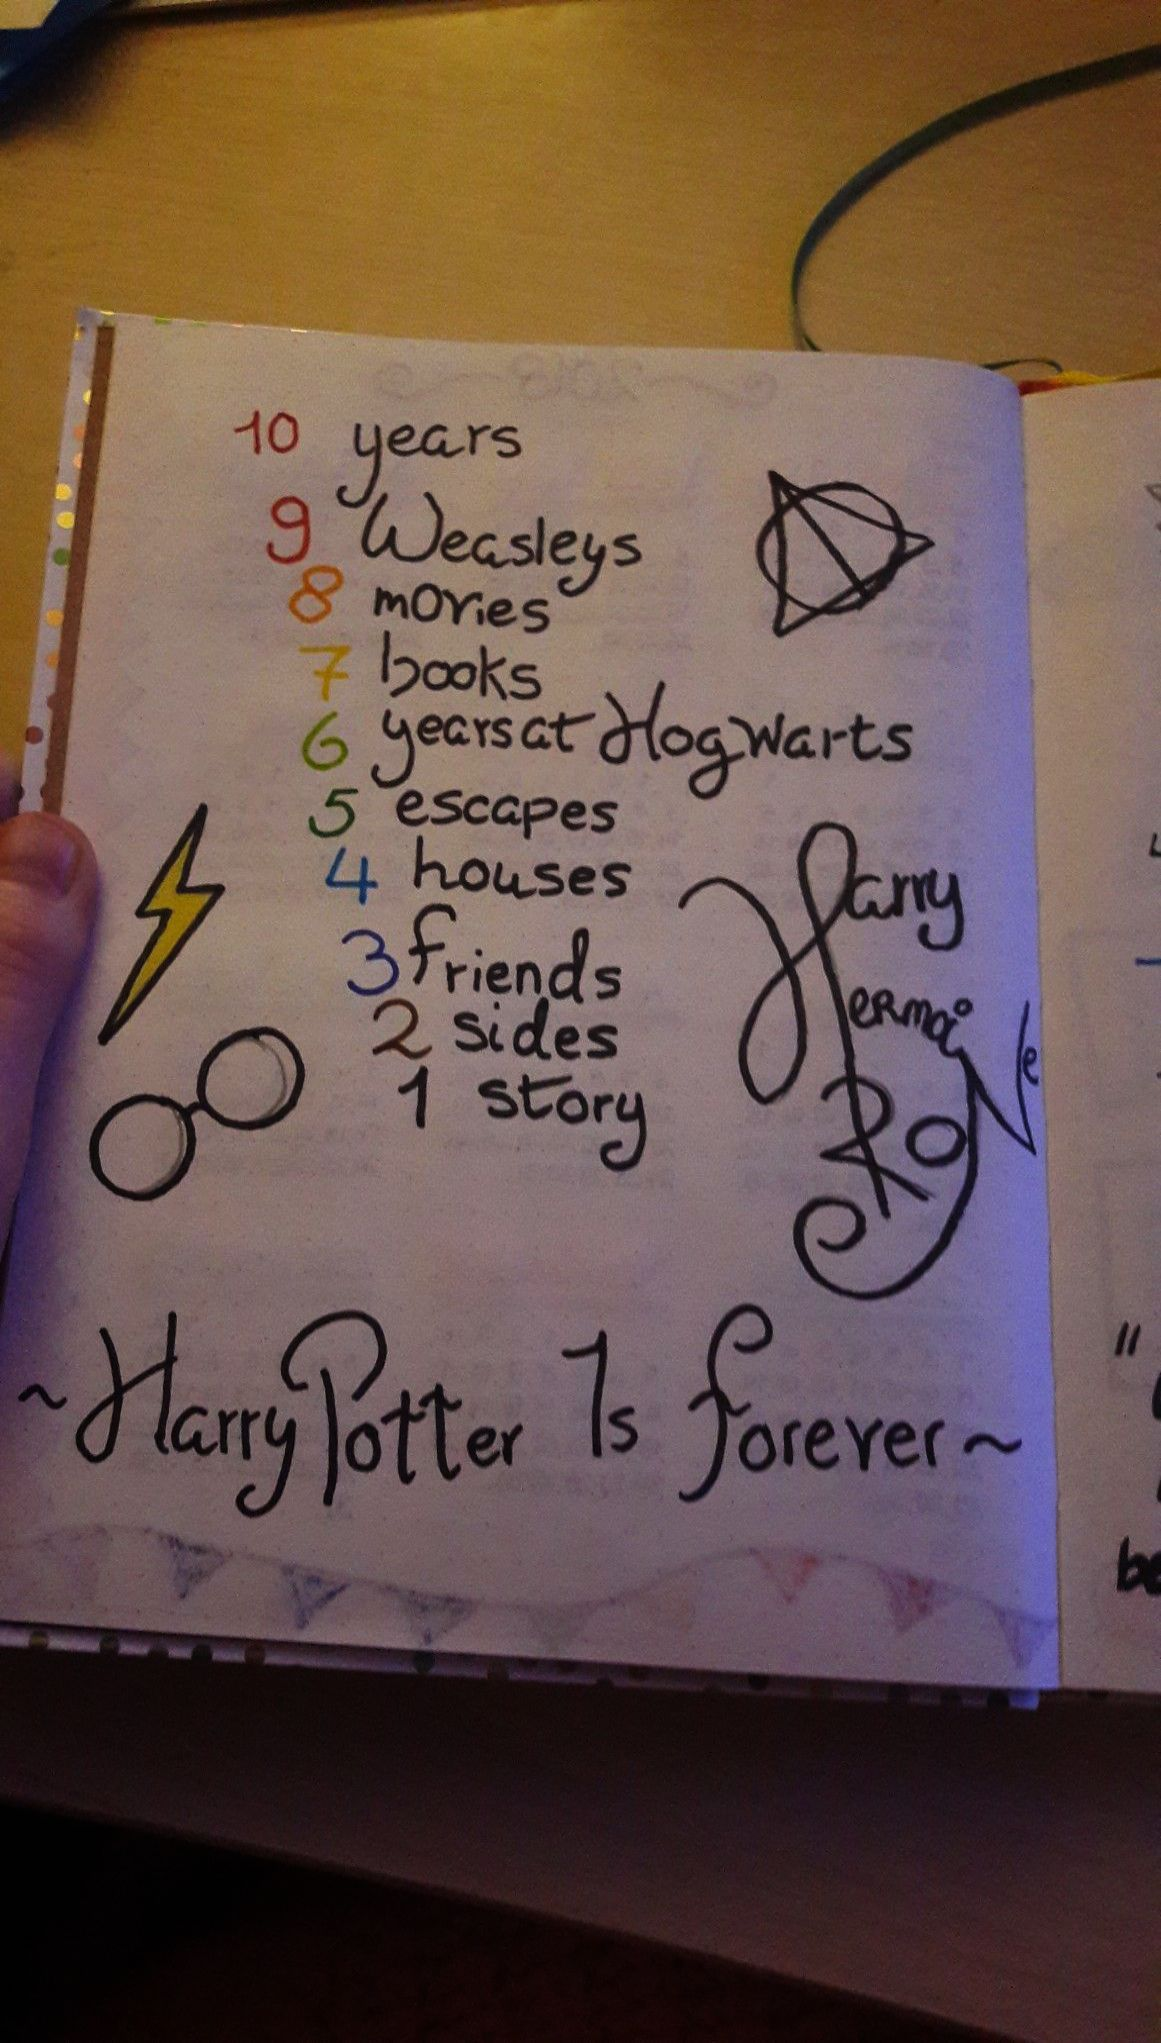 Harry Potter Movies Streaming Free While Harry Potter And Van Helsing Crossover Fanfiction Order Harry Potter Drawings Harry Potter Journal Harry Potter Spells